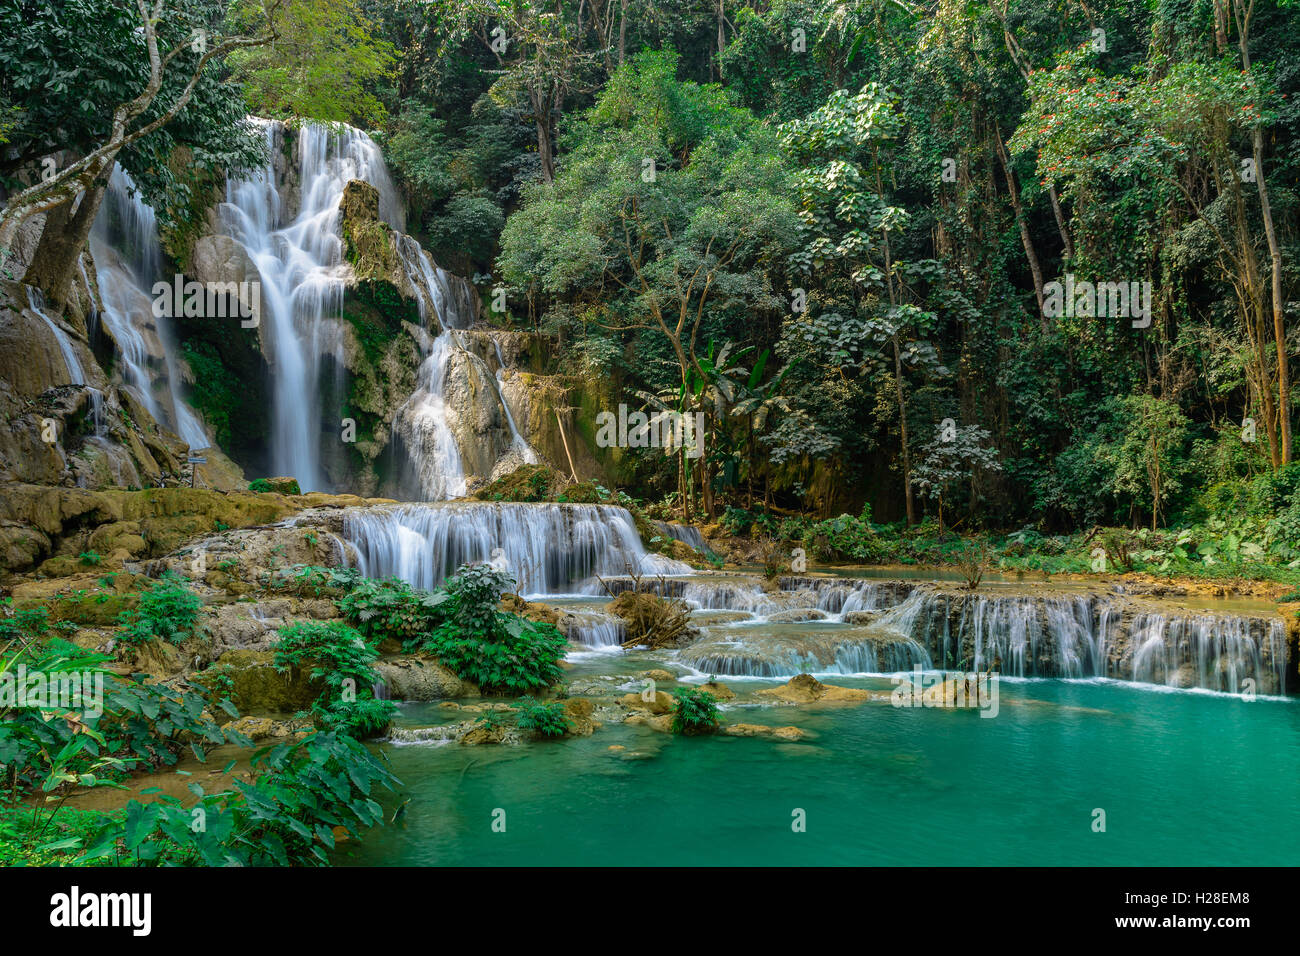 Kuang si water fall in Luang prabang,Laos. - Stock Image